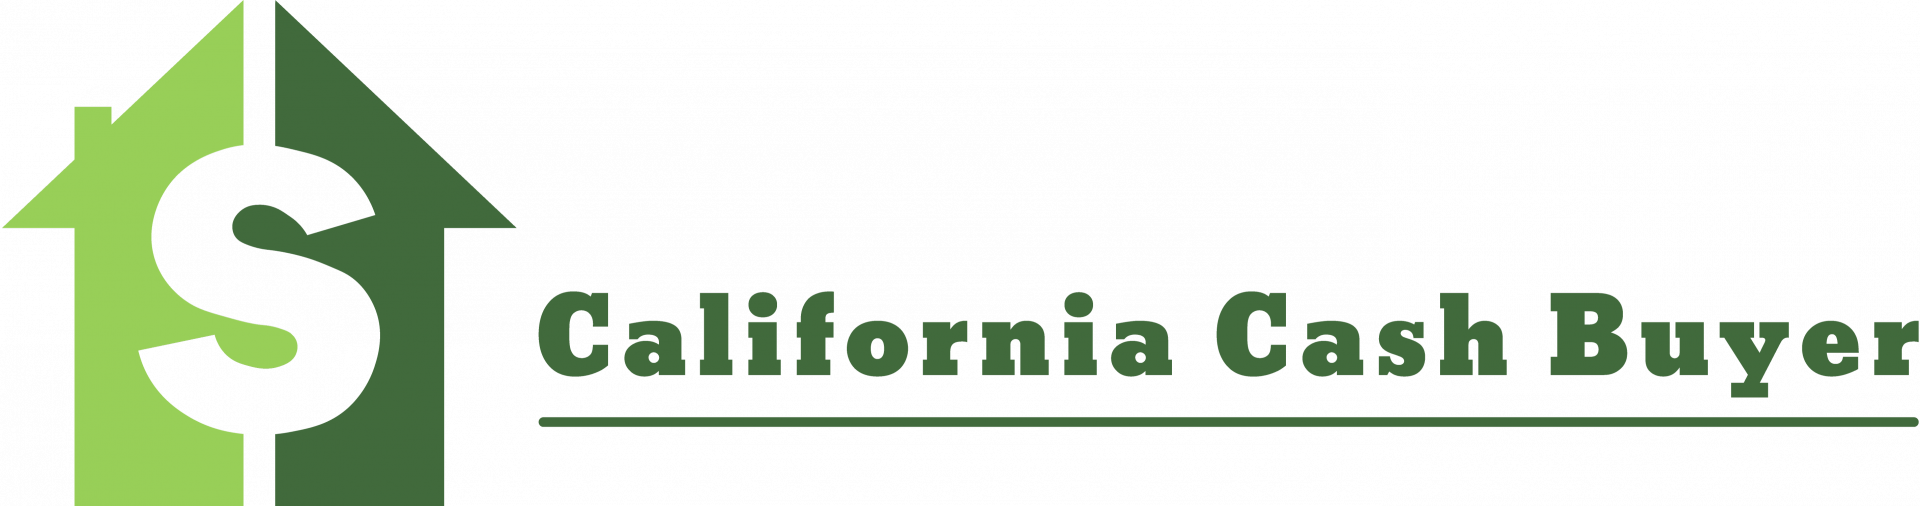 California Cash Buyer logo